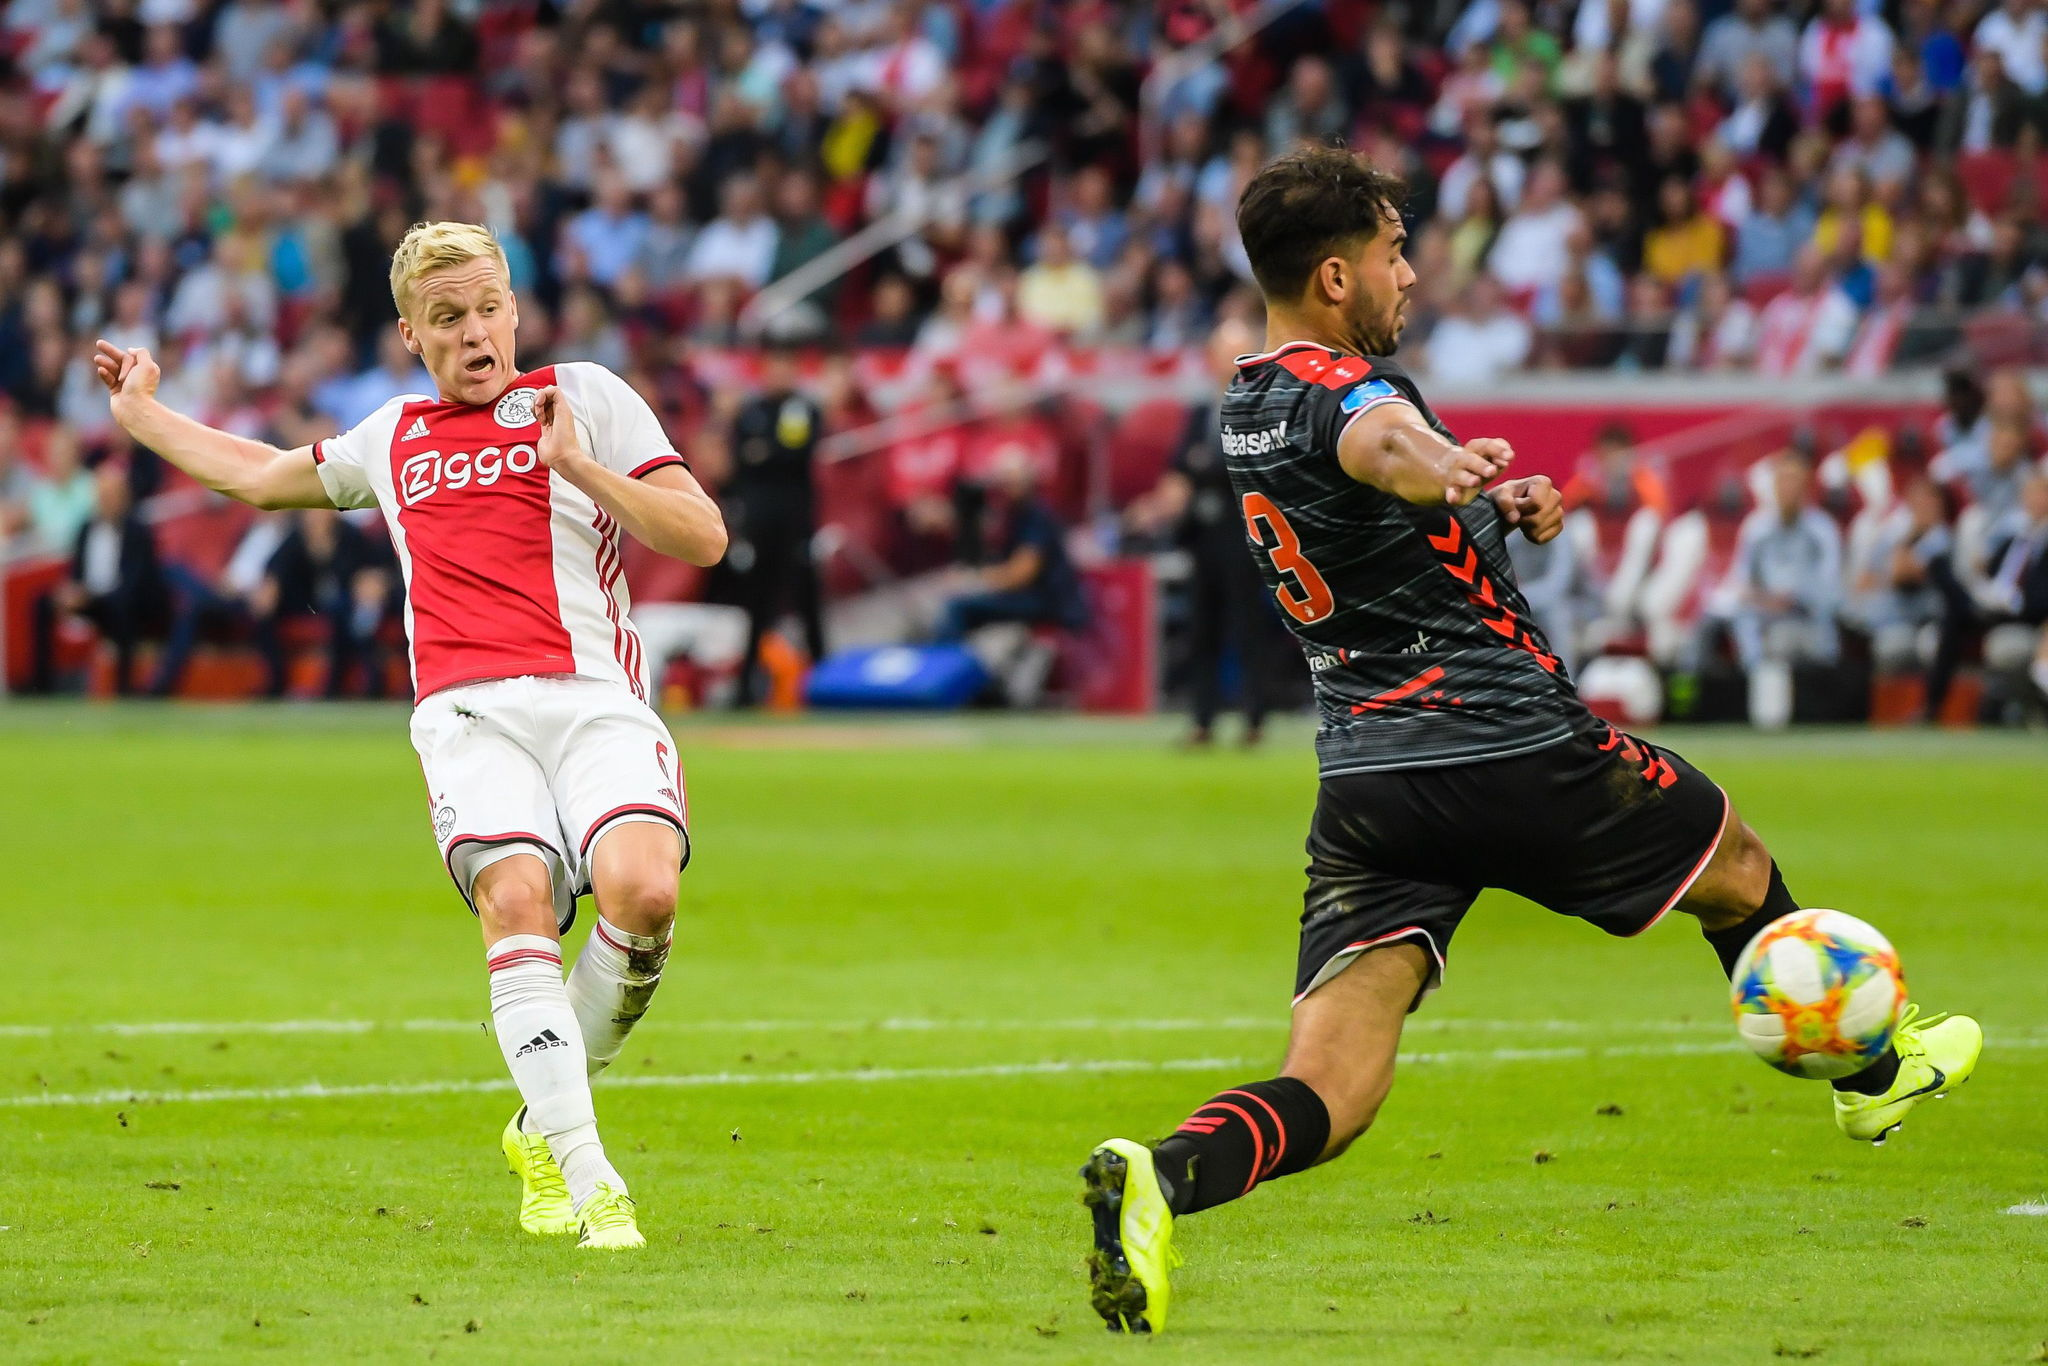 Dutch Eredivisie (Netherlands), 10/08/2019.- Donny <HIT>van</HIT> de <HIT>Beek</HIT> (L) of Ajax and Keziah Veendorp of FC Emmen in action during the Dutch Eredivisie match between Ajax Amsterdam and FC Emmen at the Johan Cruijff Arena in Amsterdam, The Netherlands, 10 August 2019. (Países Bajos; Holanda) EFE/EPA/VI-Images / Gerrit <HIT>van</HIT> Keulen